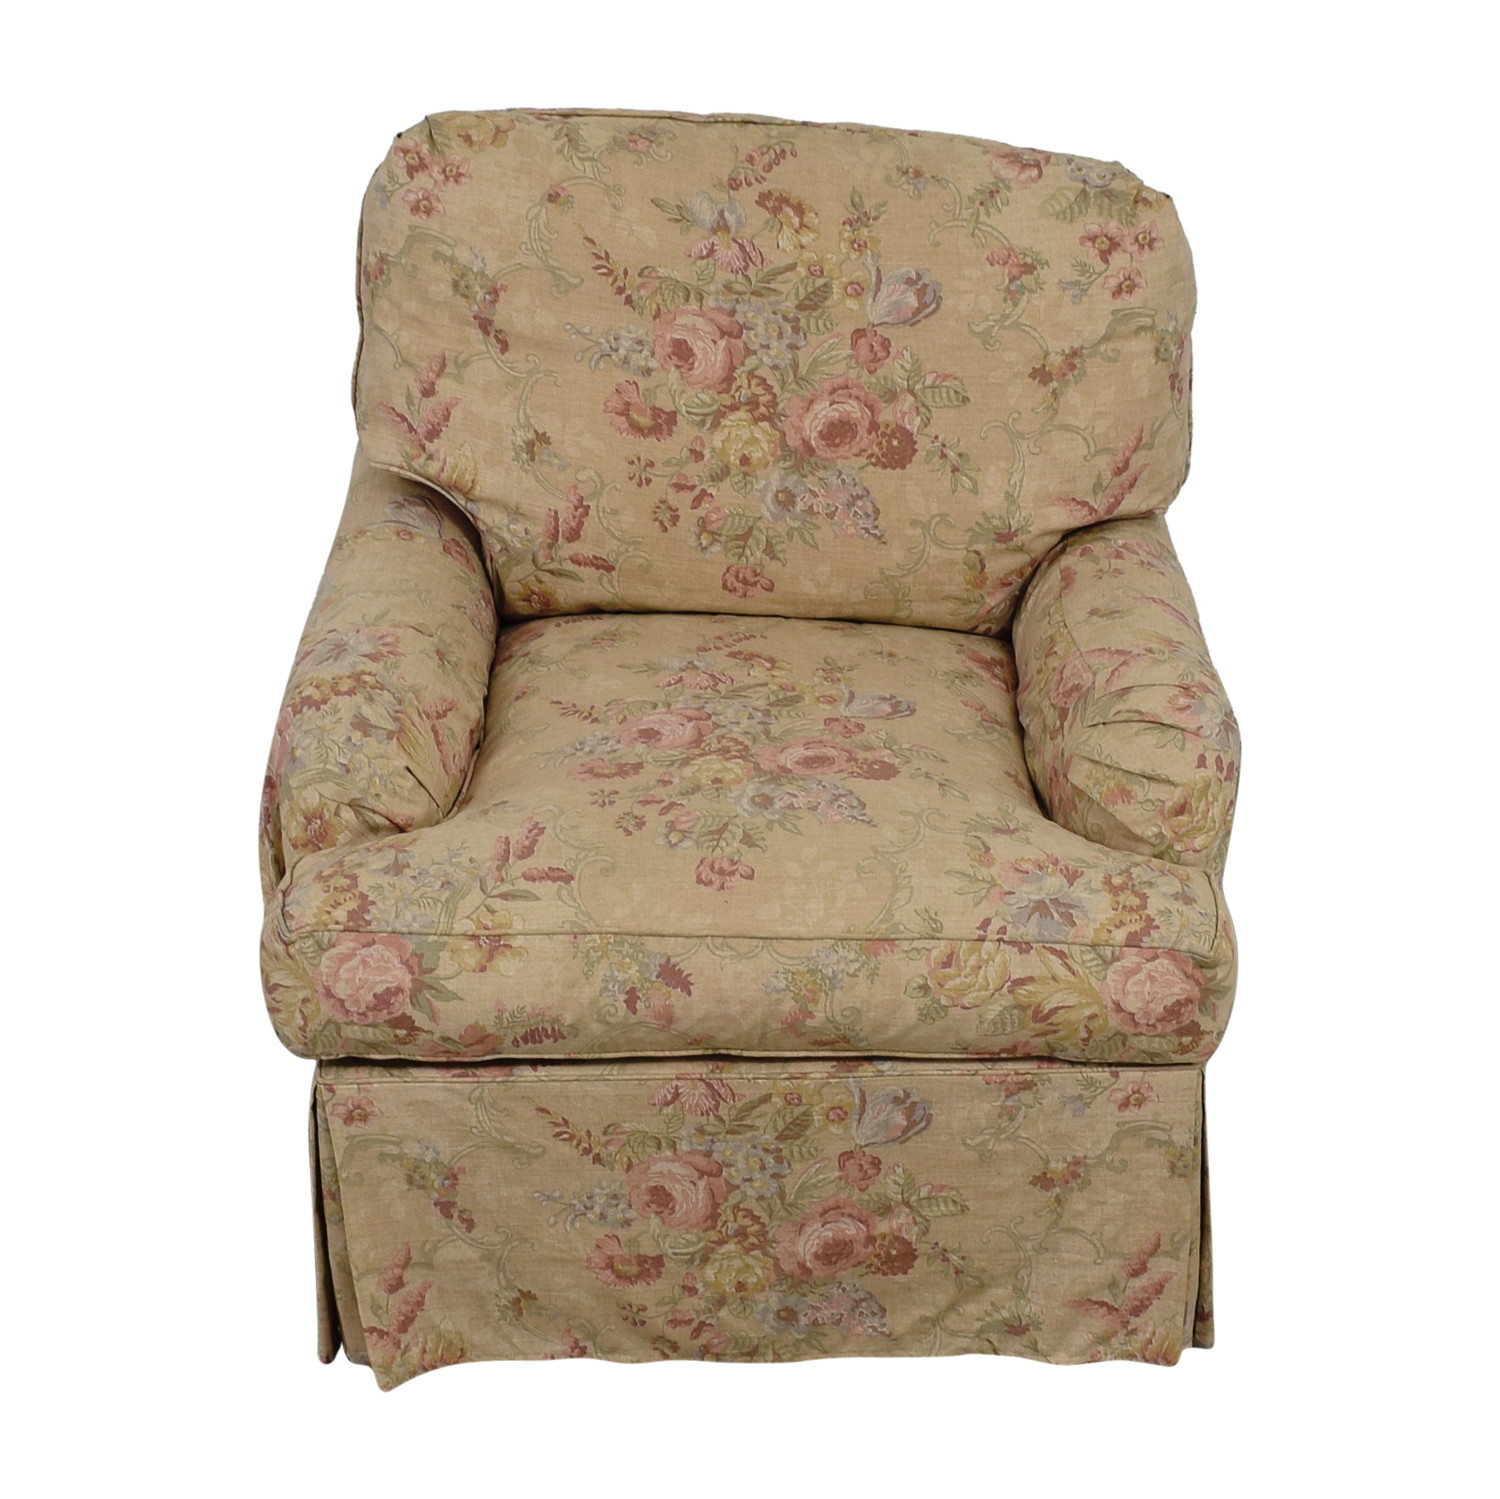 90% OFF - Domain Domain Beige and Pink Floral Accent Chair ...